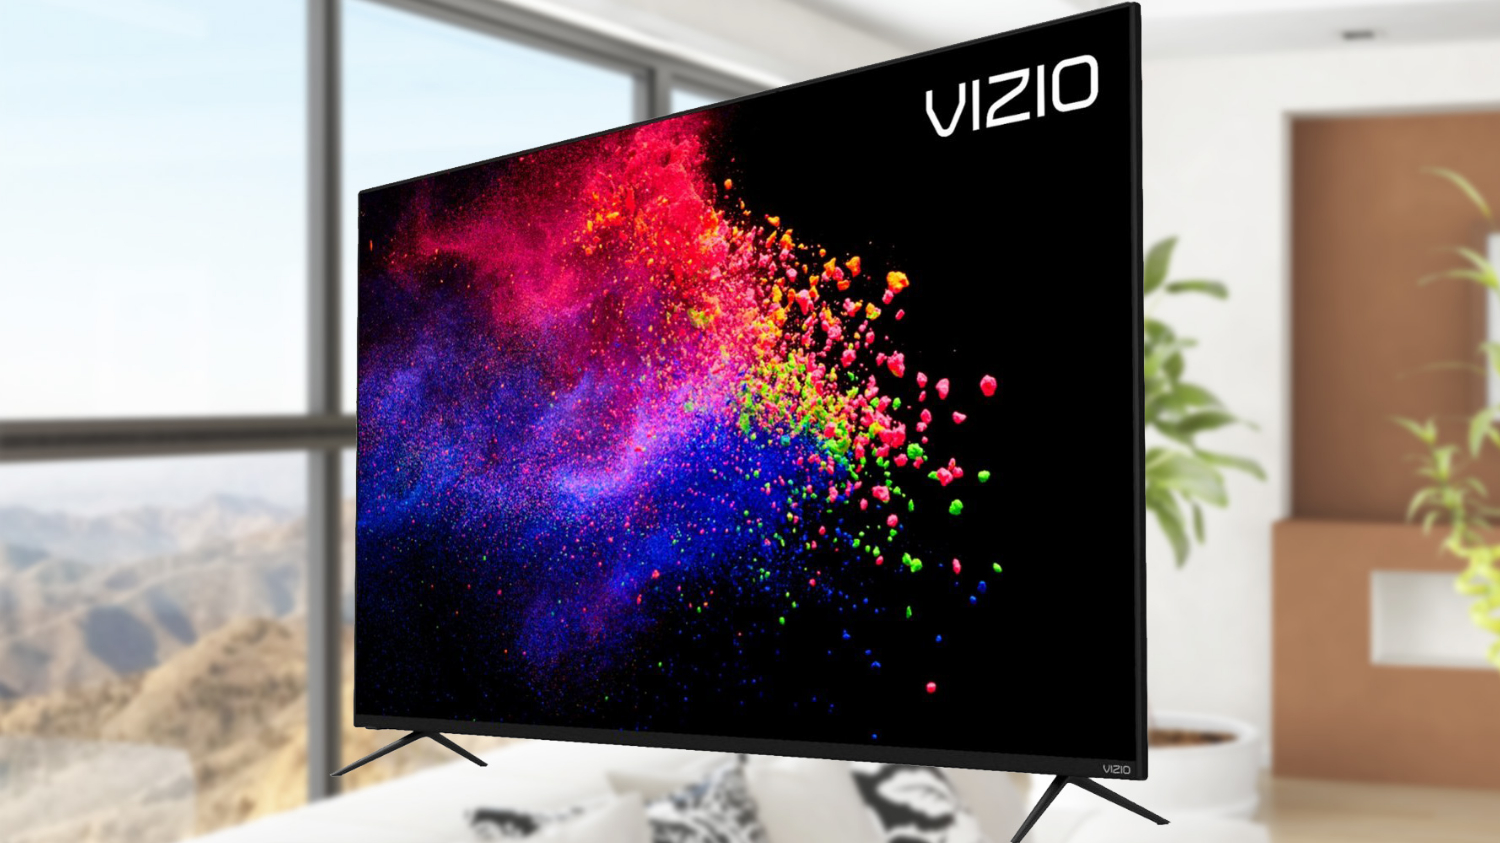 041333f63468 Best Smart TVs 2019 - The Best 4K and HD Televisions for the Money | Tom's  Guide